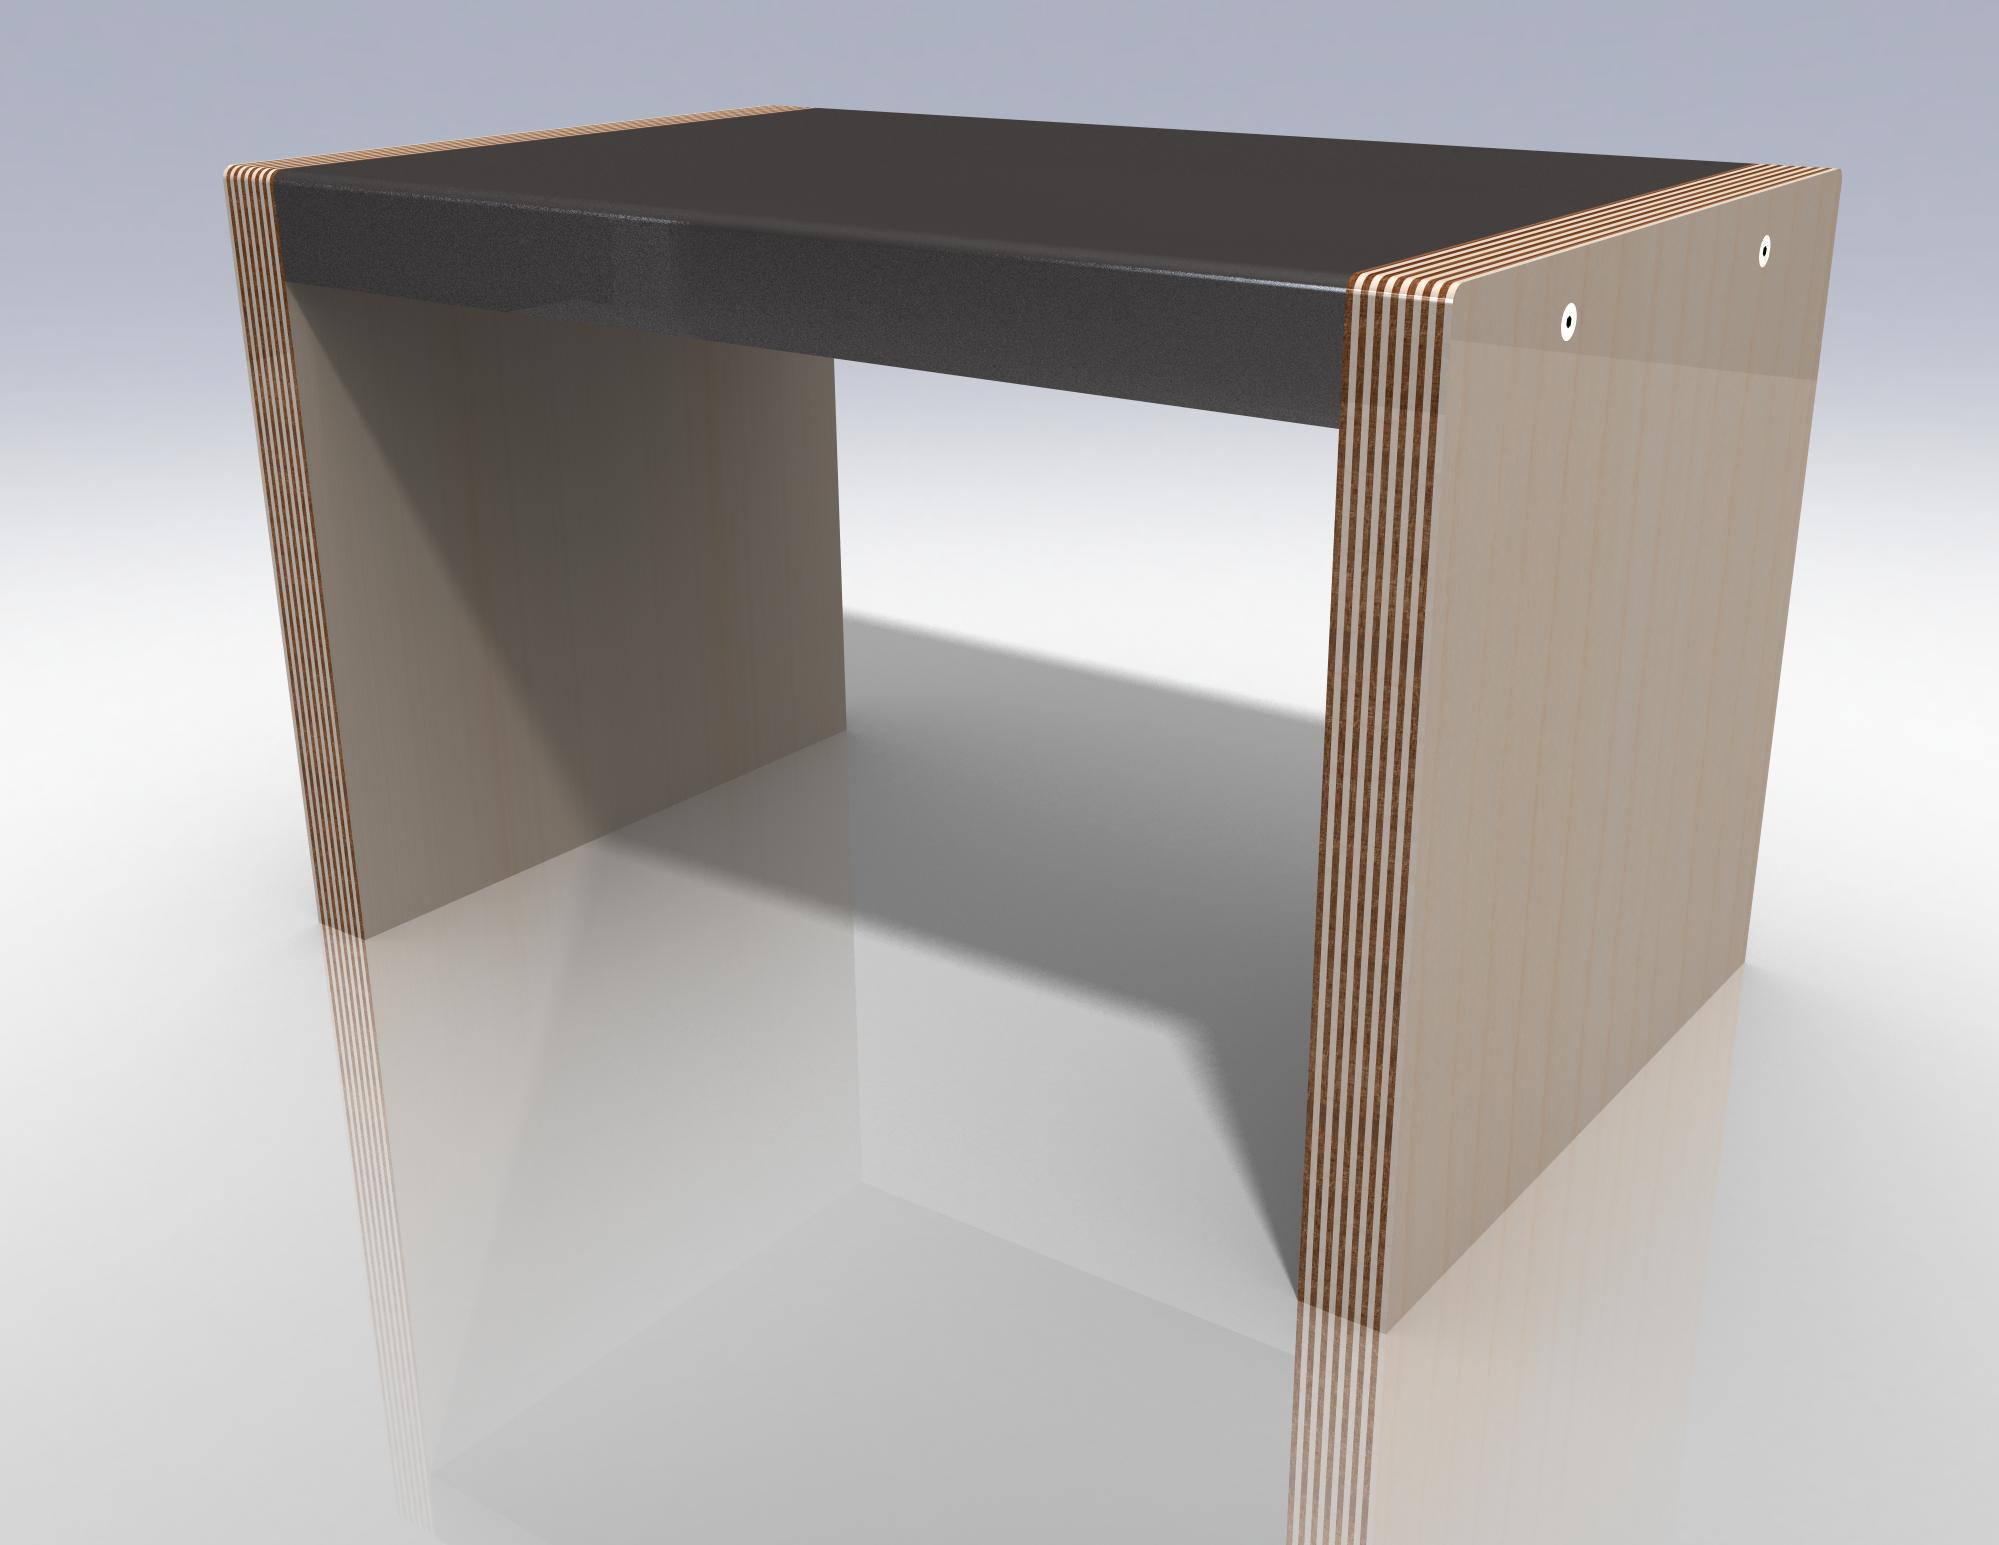 1 night stand iso rendering